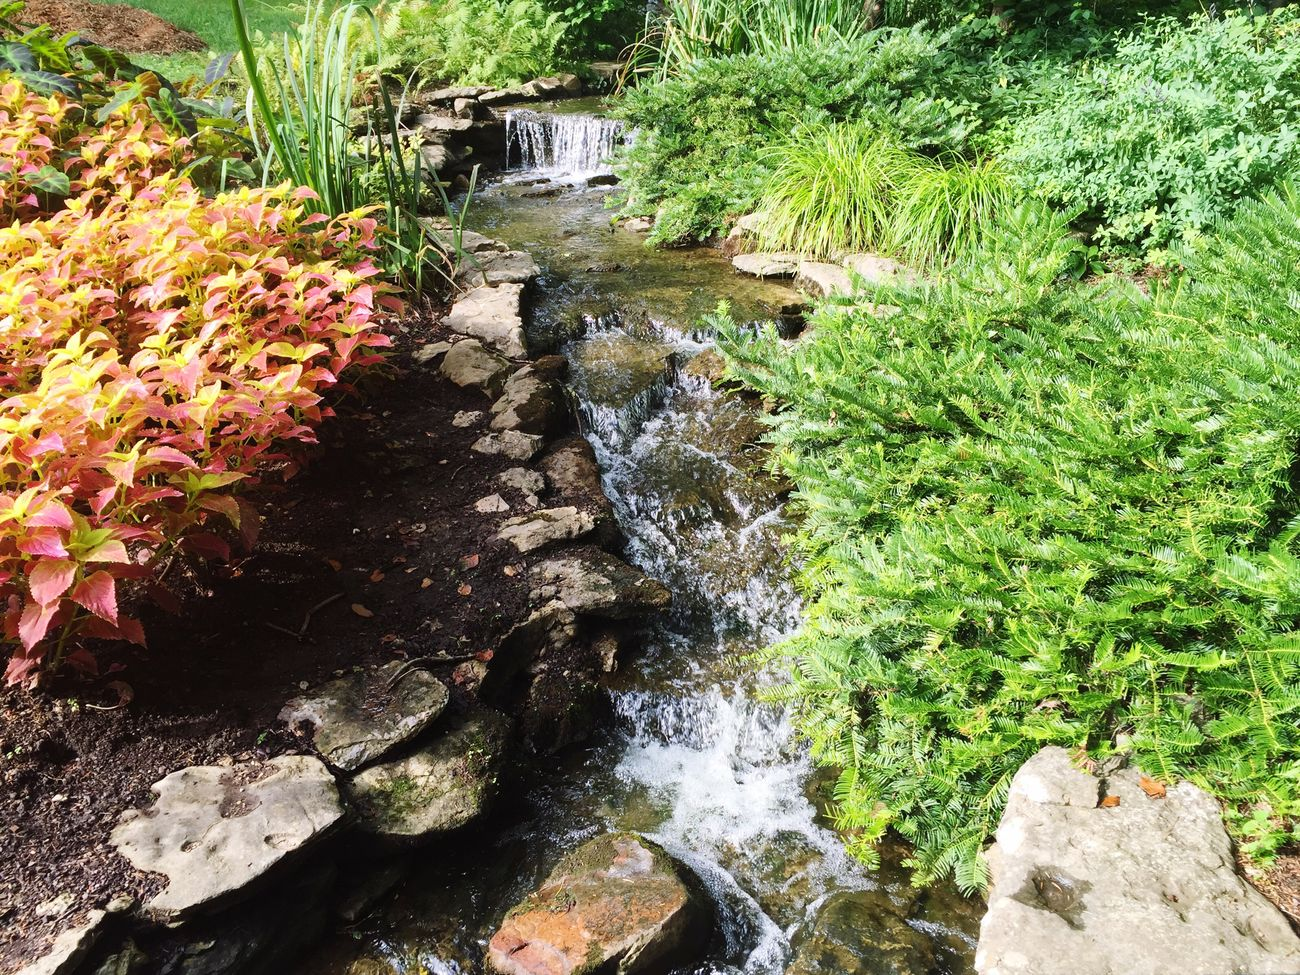 Showcase July Stream Beautiful Nature Flowers Flowers,Plants & Garden Check This Out Nice